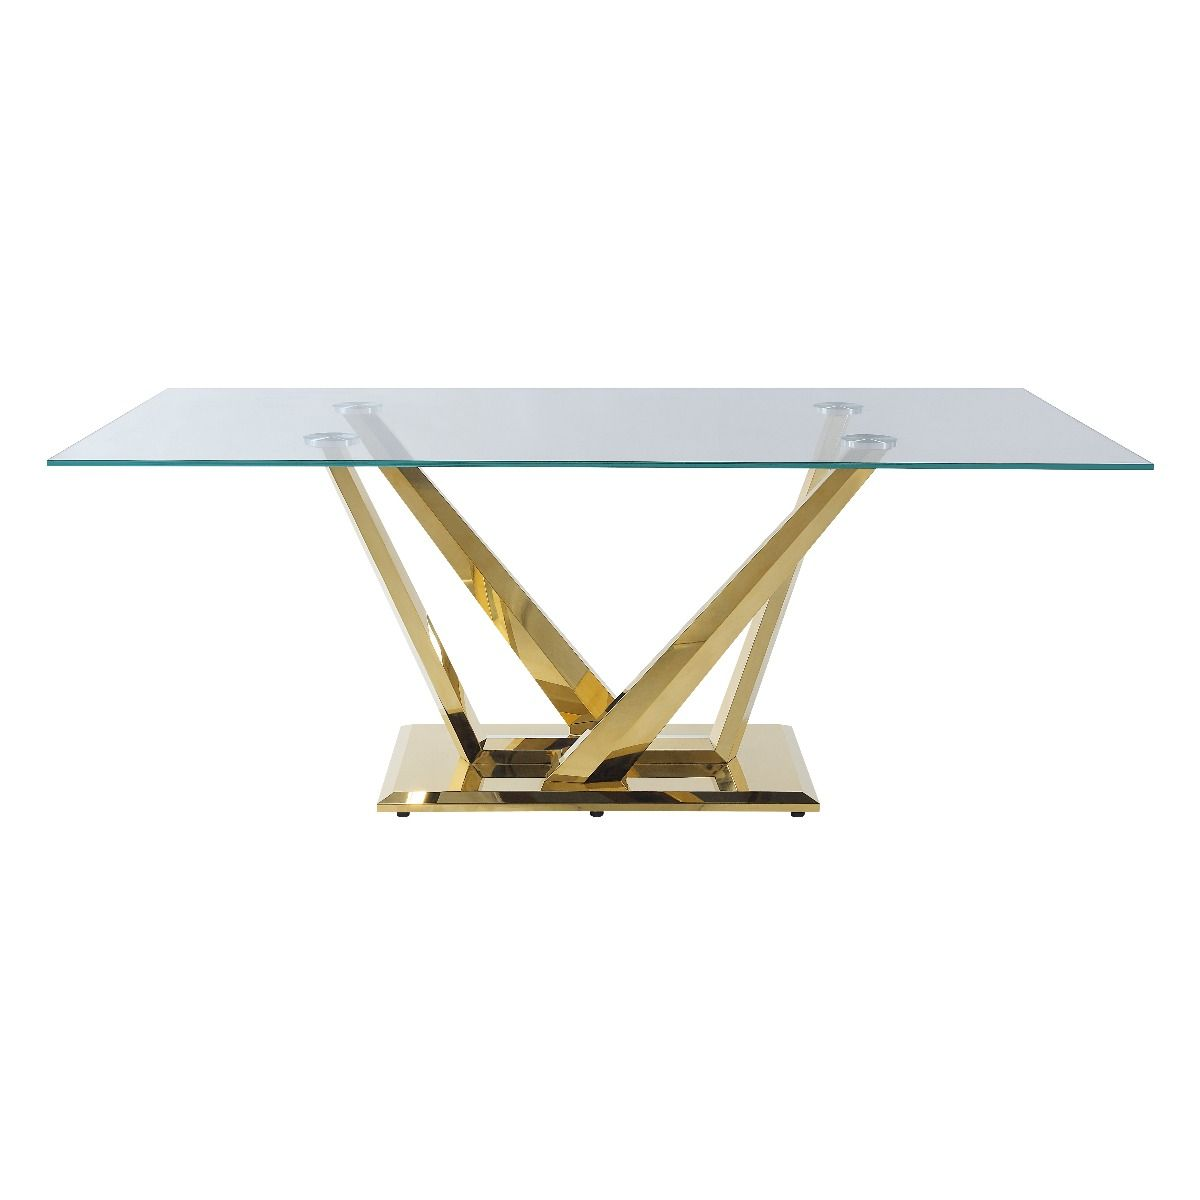 Barnard Table by Acme Furniture at Dream Home Interiors